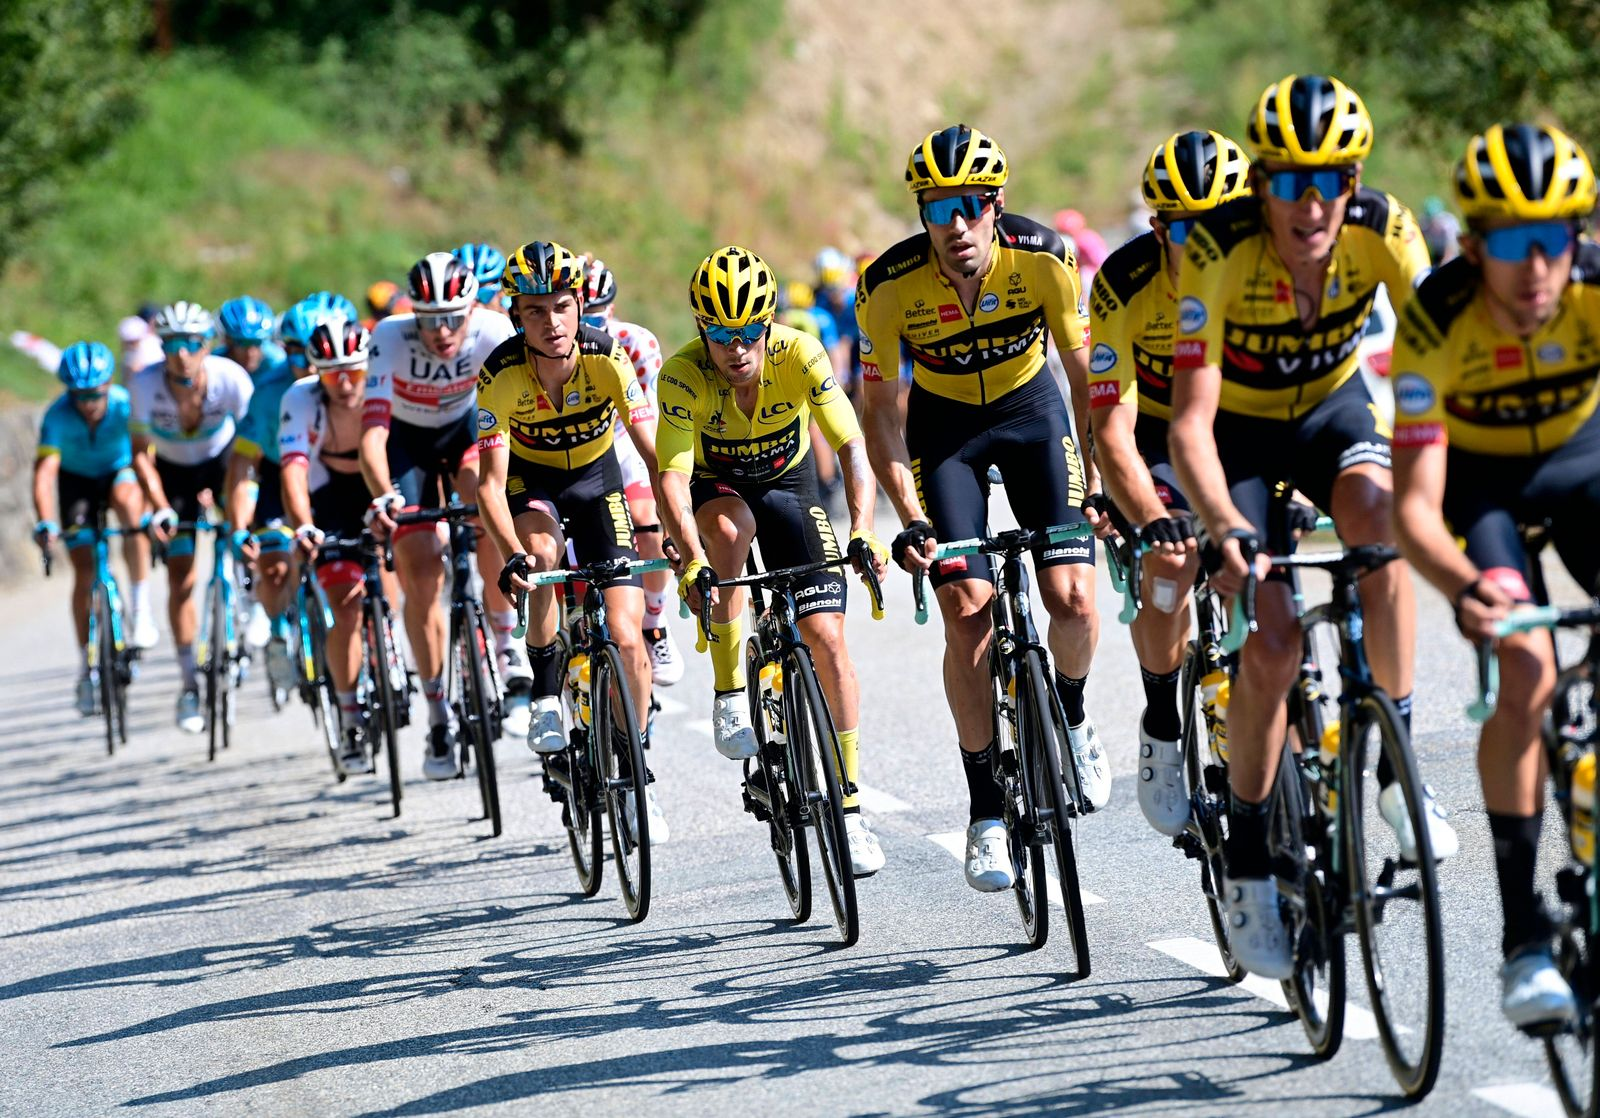 LA ROCHE-SUR-FORON, FRANCE - SEPTEMBER 17 : DUMOULIN Tom (NED) of TEAM JUMBO - VISMA, ROGLIC Primoz (SLO) of TEAM JUMBO